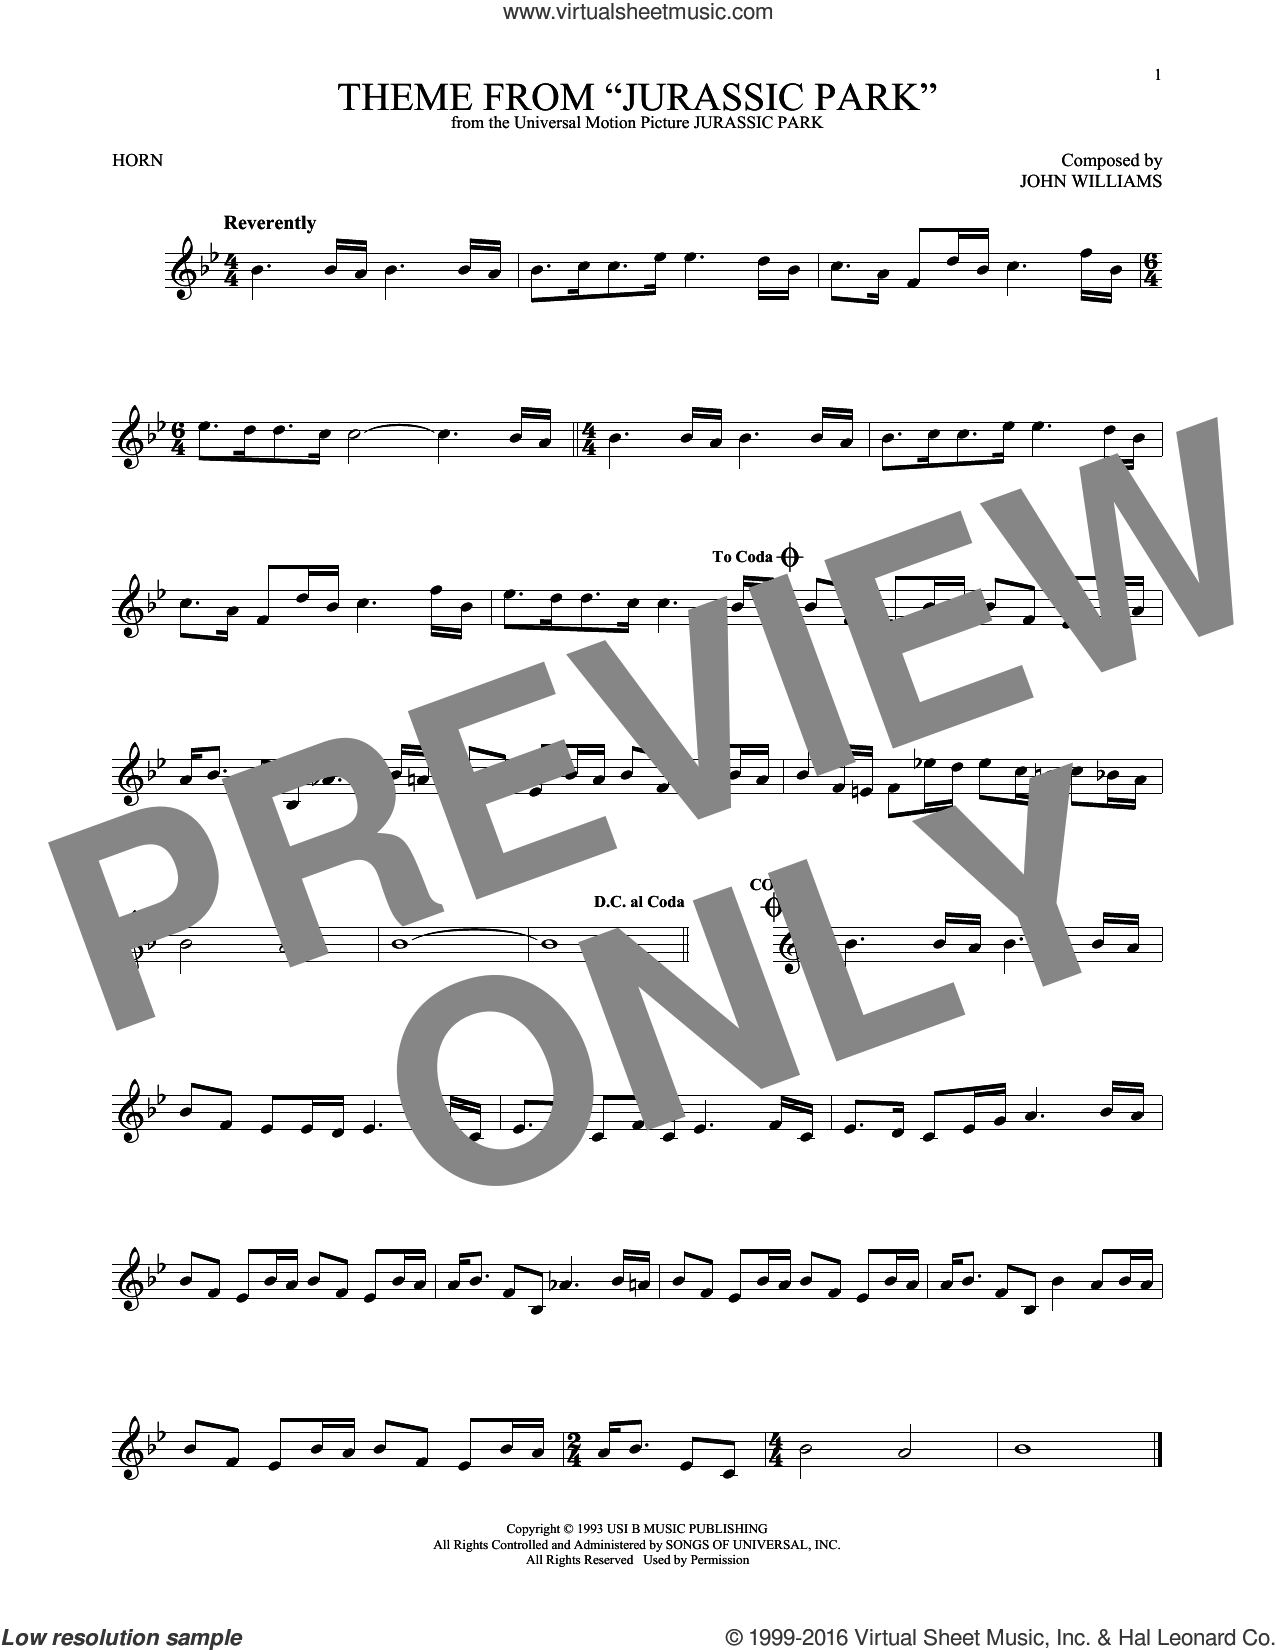 Theme From Jurassic Park sheet music for horn solo by John Williams, intermediate skill level